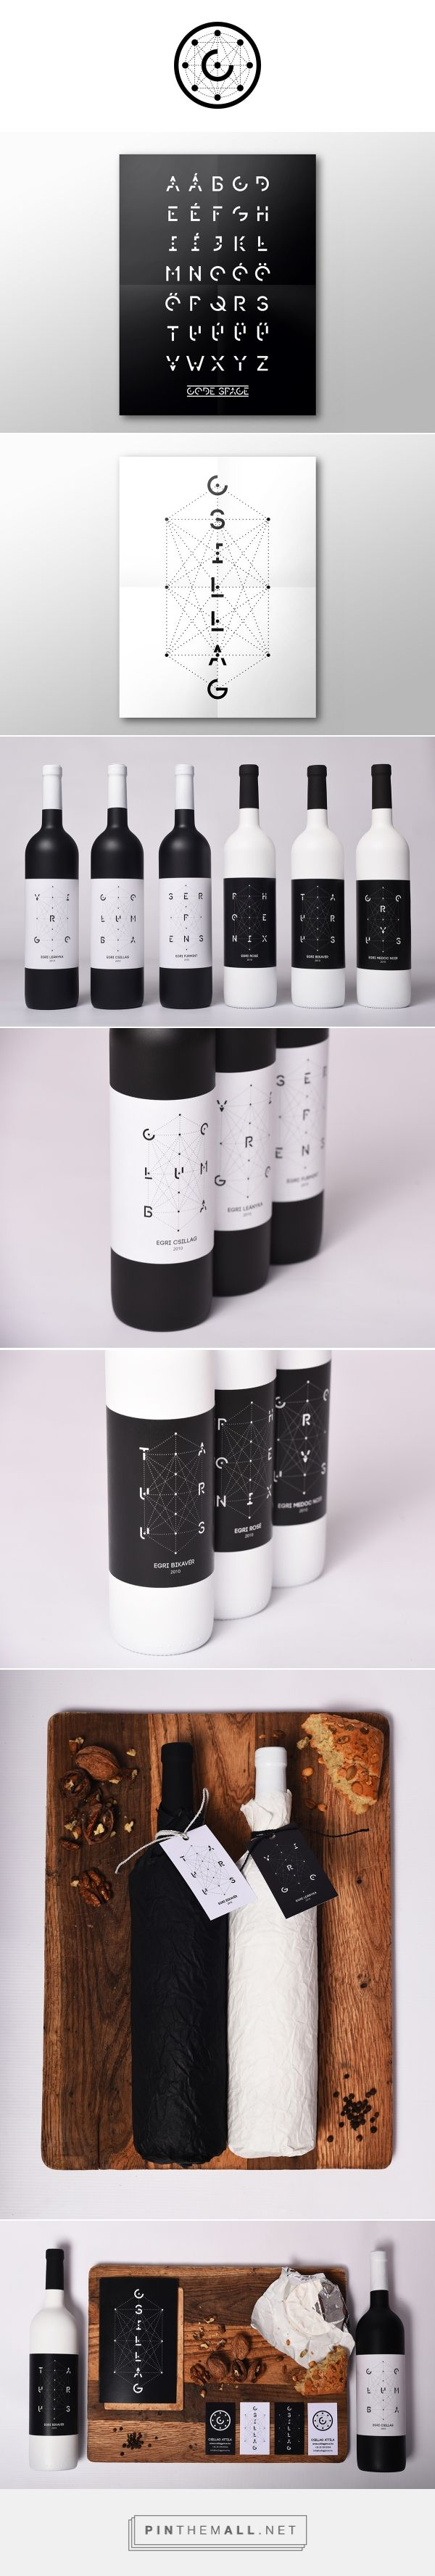 CSILLAG Winery packaging on Behance by Geri Osgyán curated by Packaging Diva PD. School project for an imaginary winery, the Csillag Winery.